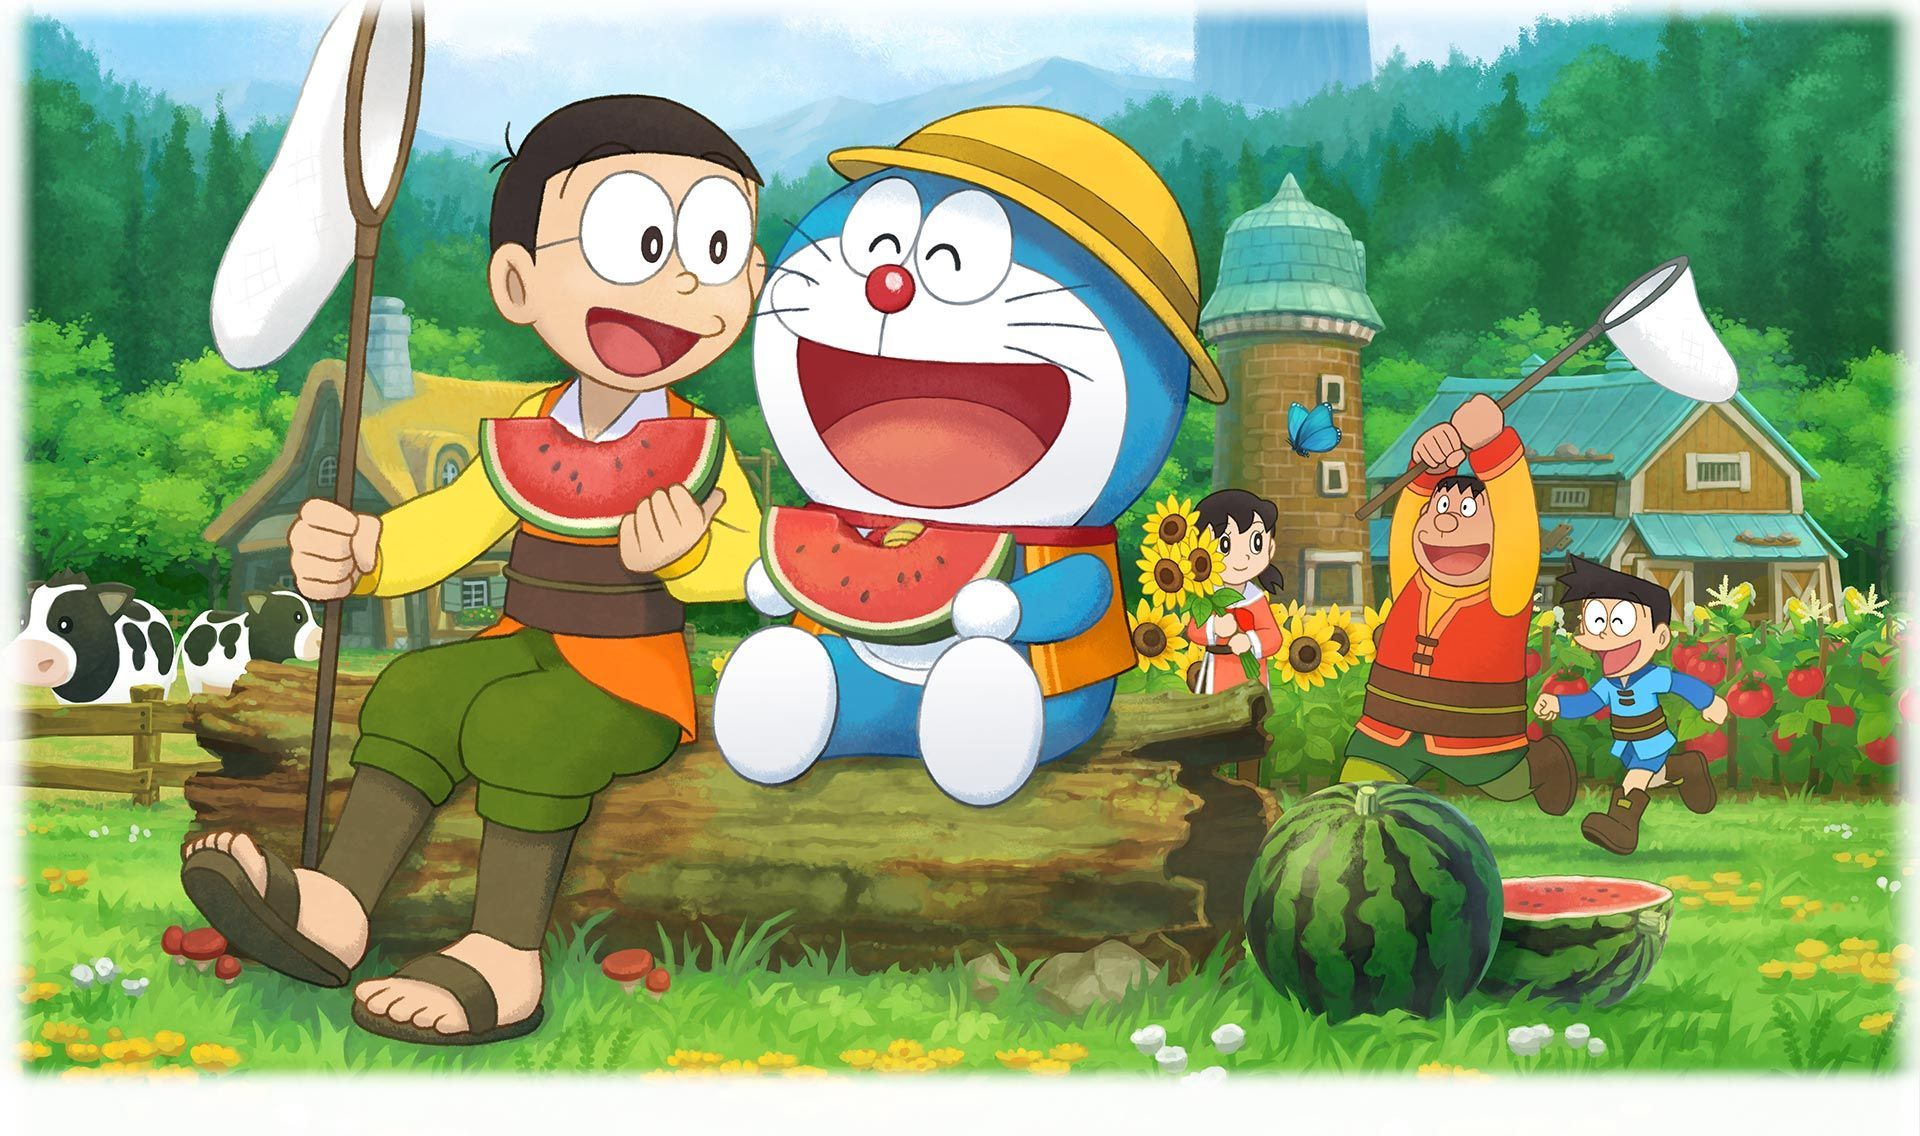 Hd Wallpapers And Background Images Tons Of Awesome Doraemon Stand By Me Wallpapers To Download For Free Doraemon Nobit Doraemon Doraemon Stand By Me Anime